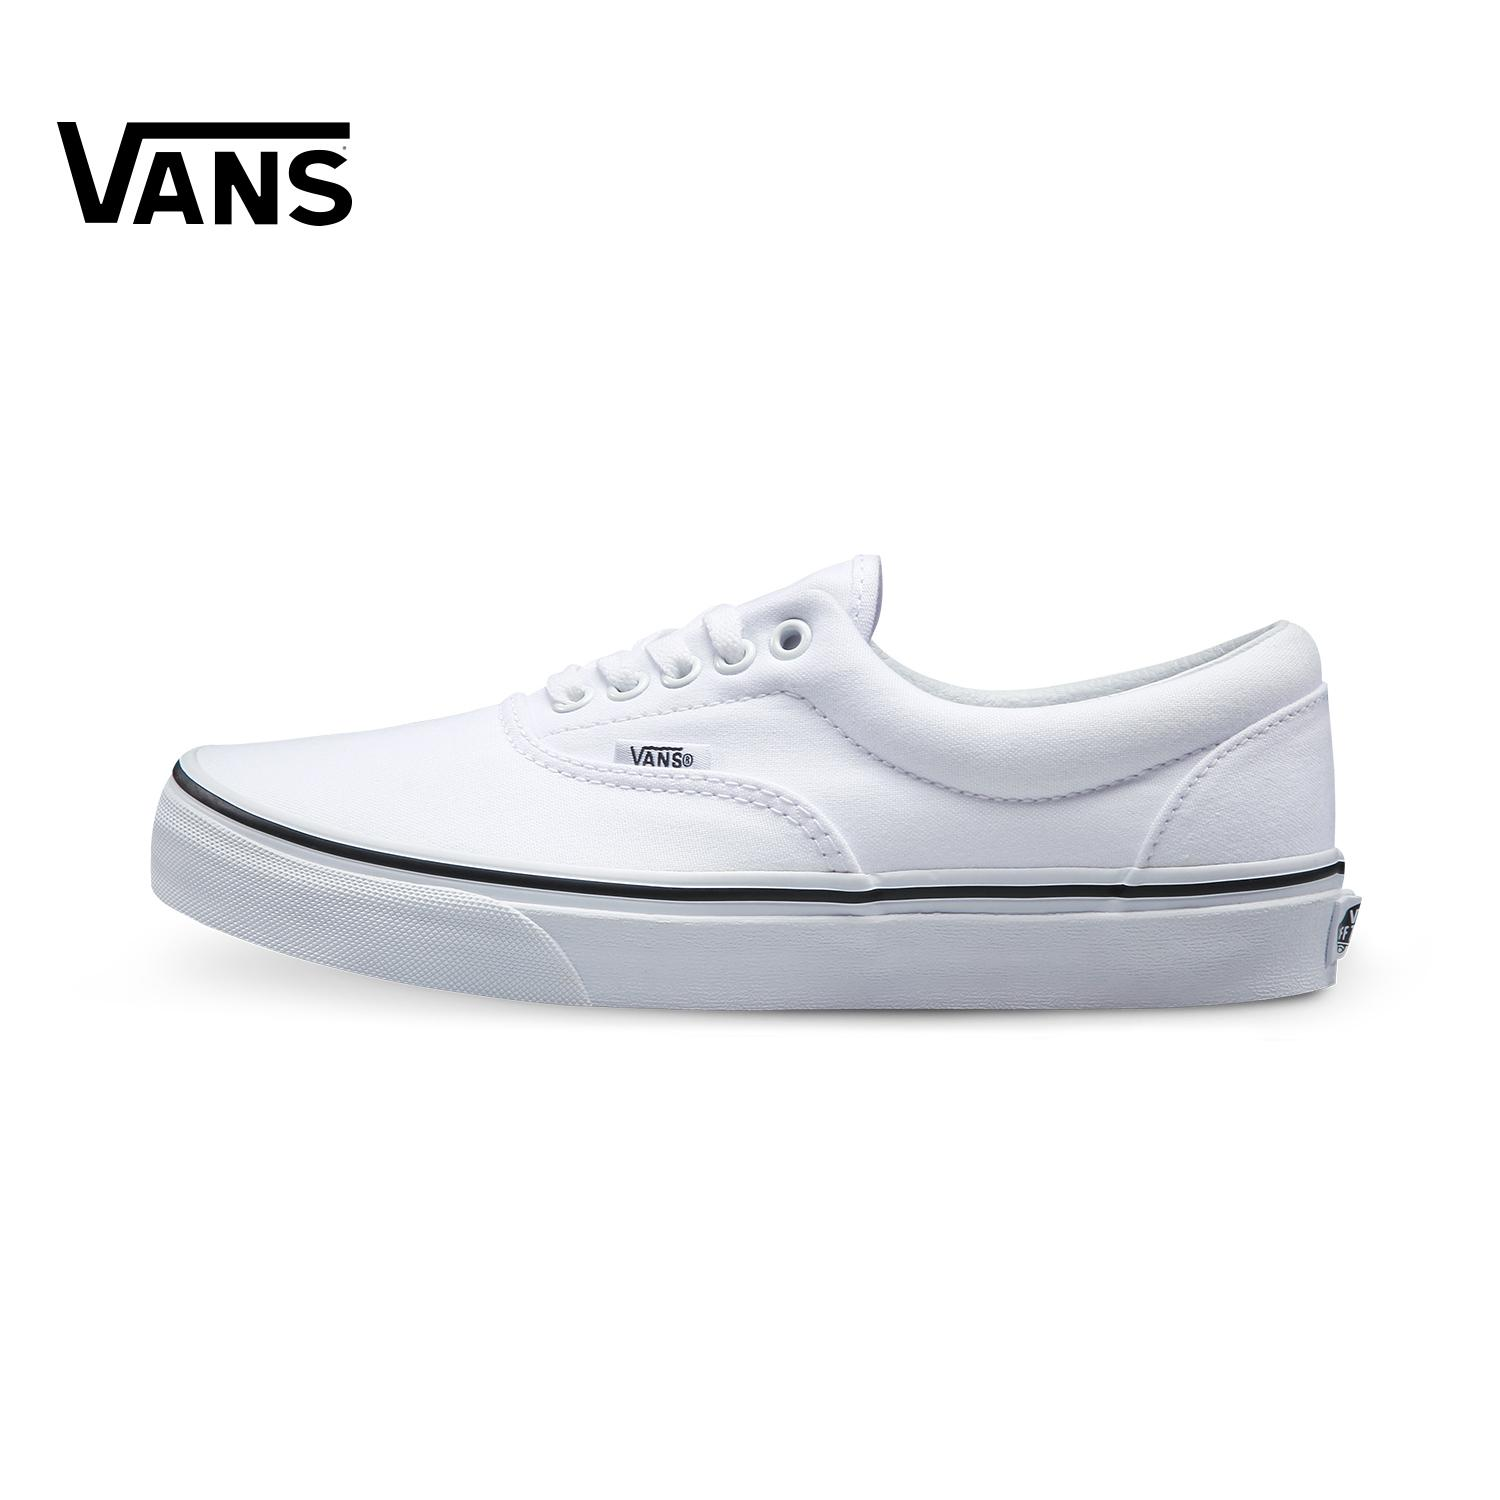 d6cb1dae15b9 Malaysia. Vans Men s Shoes Low Top Classic Style Era Canvas Shoes  BLACK WHITE Couples VN-0EWZBLK Vans